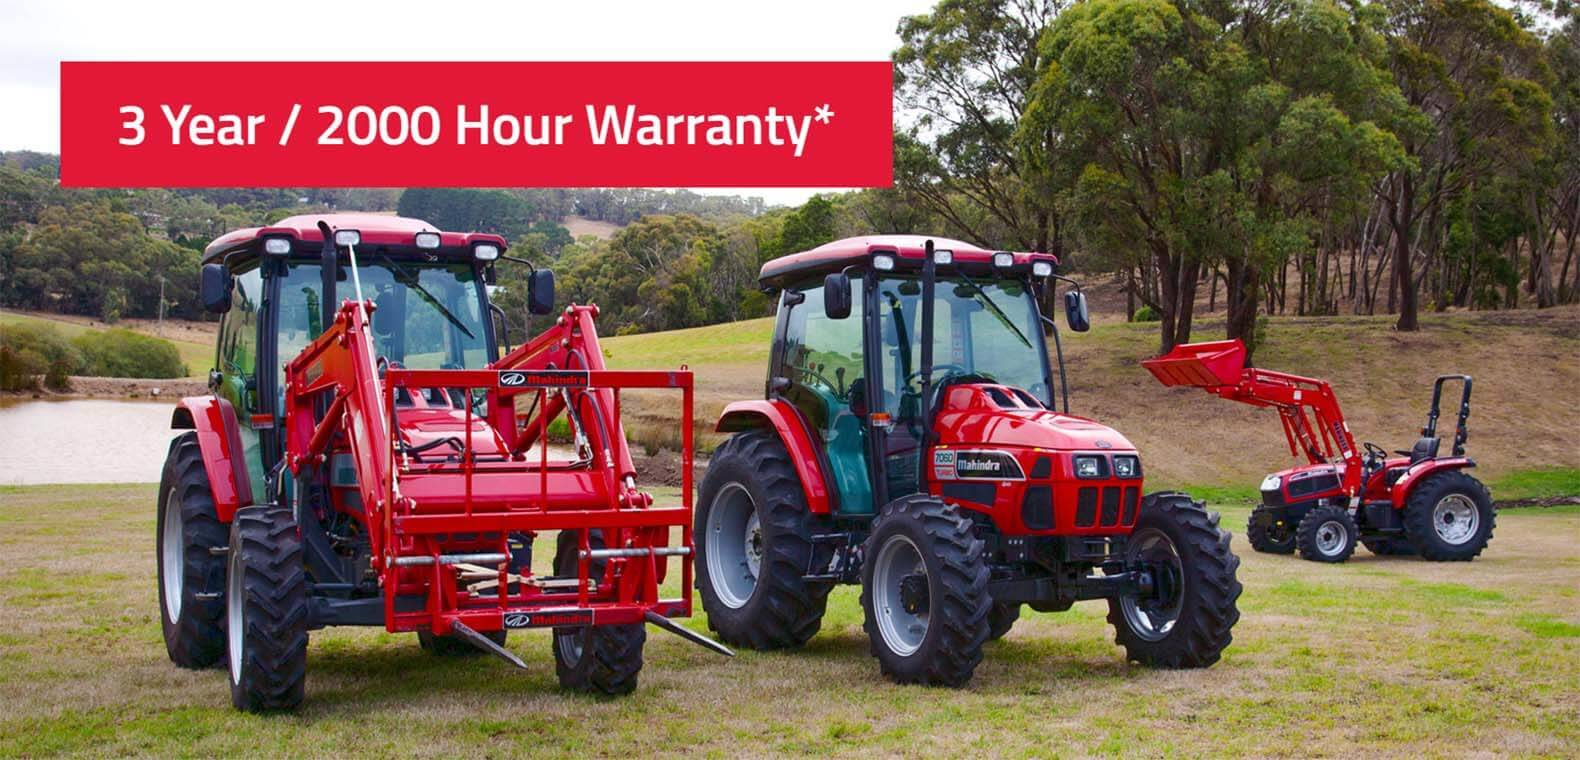 Mahindra AG - 3 Year Warranty